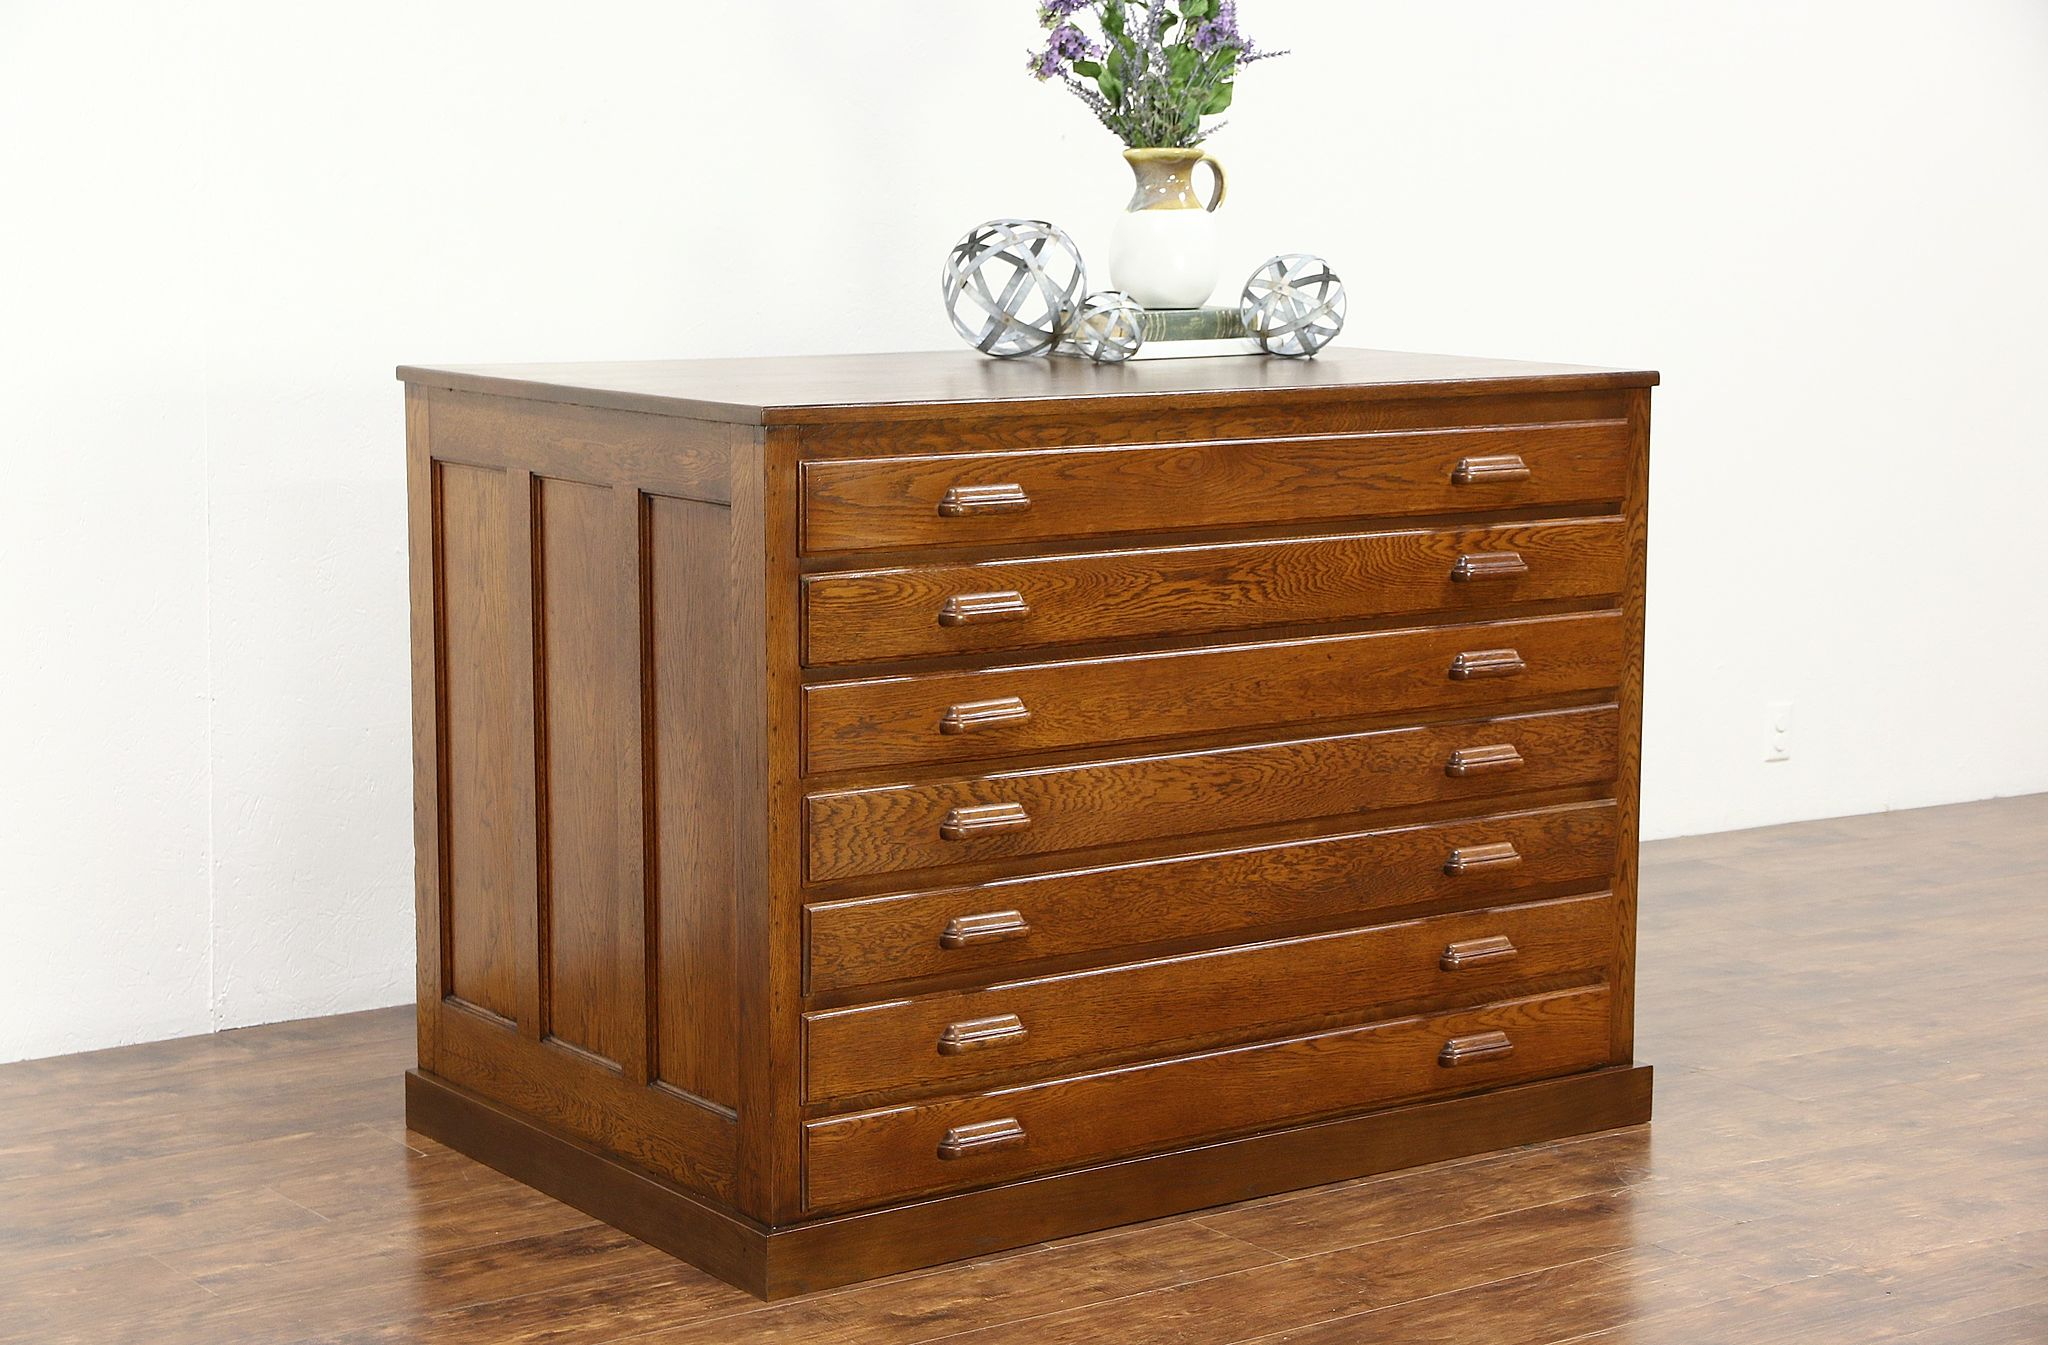 Beau Oak 1910 Antique 7 Drawer Map Chest Or Drawing File Cabinet